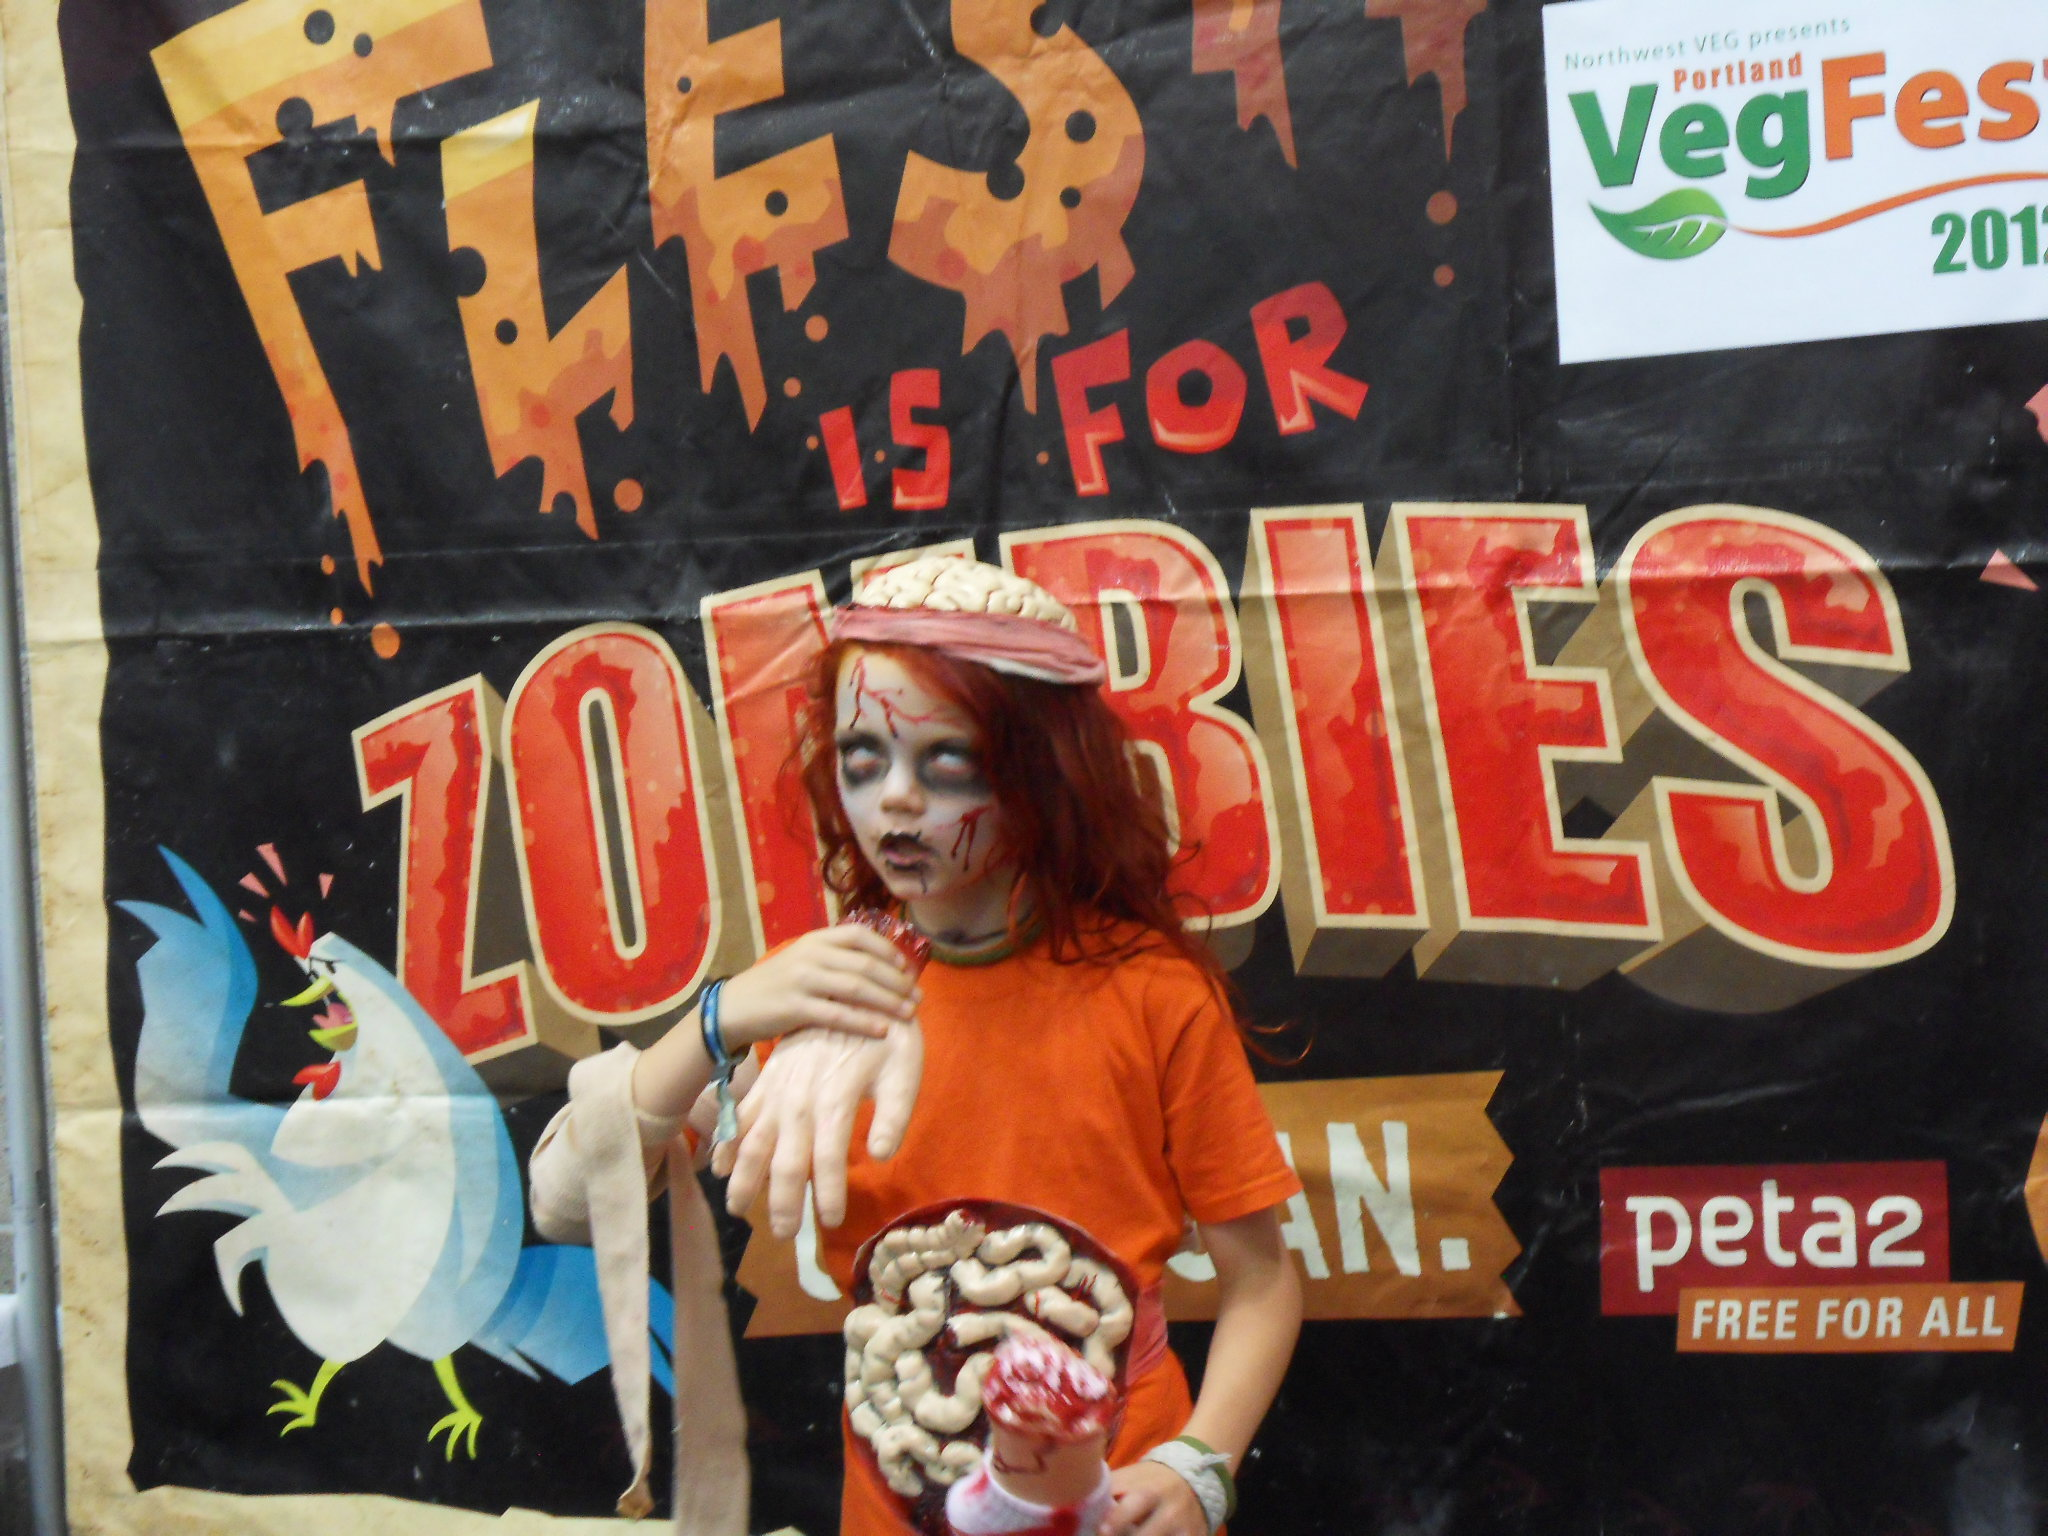 This girl gets my vote for VegFest zombie champion.